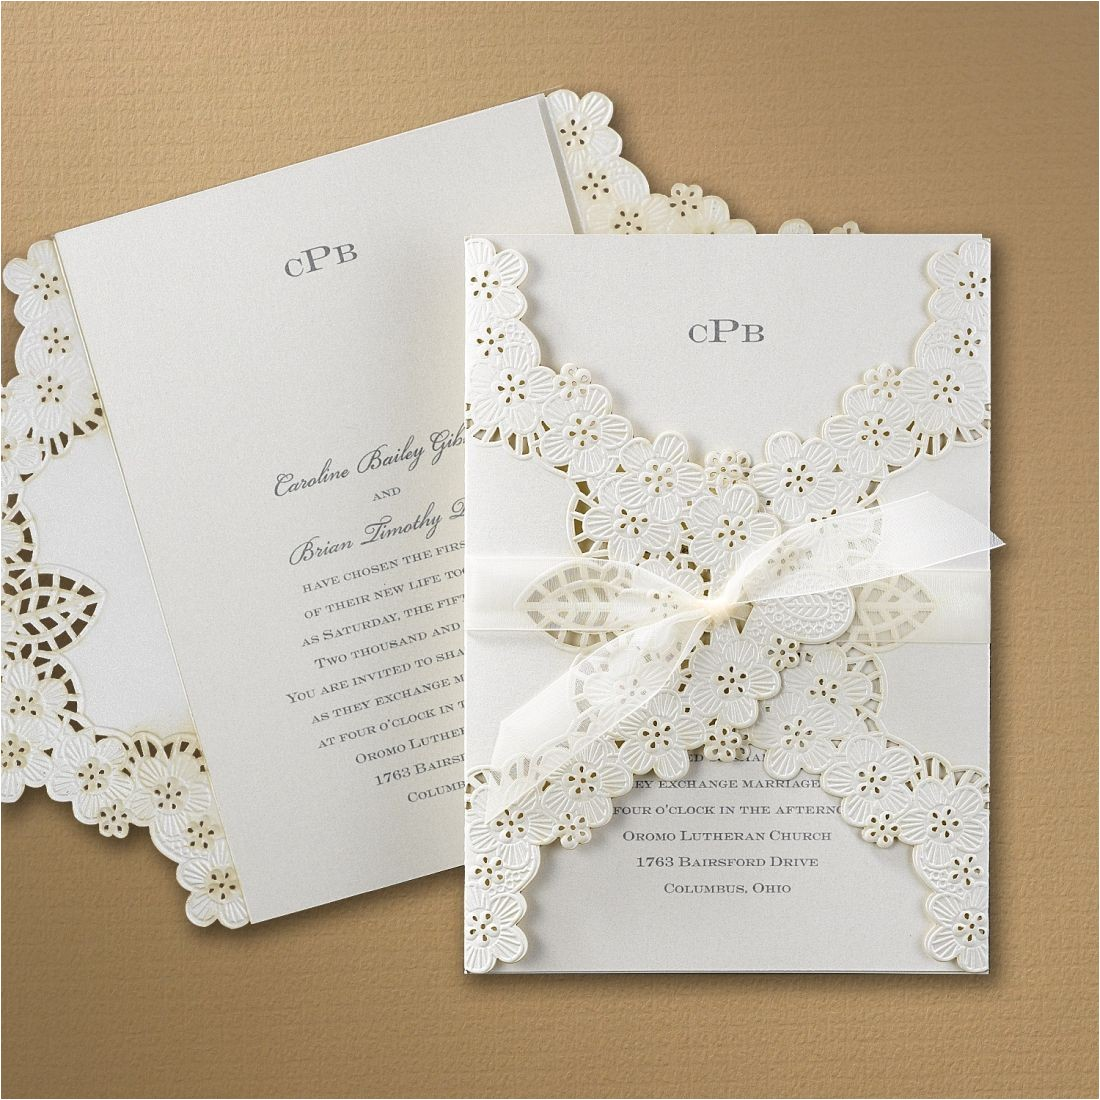 carlson crafts wedding invitations ideas tips carlson craft wedding invitations within carlson